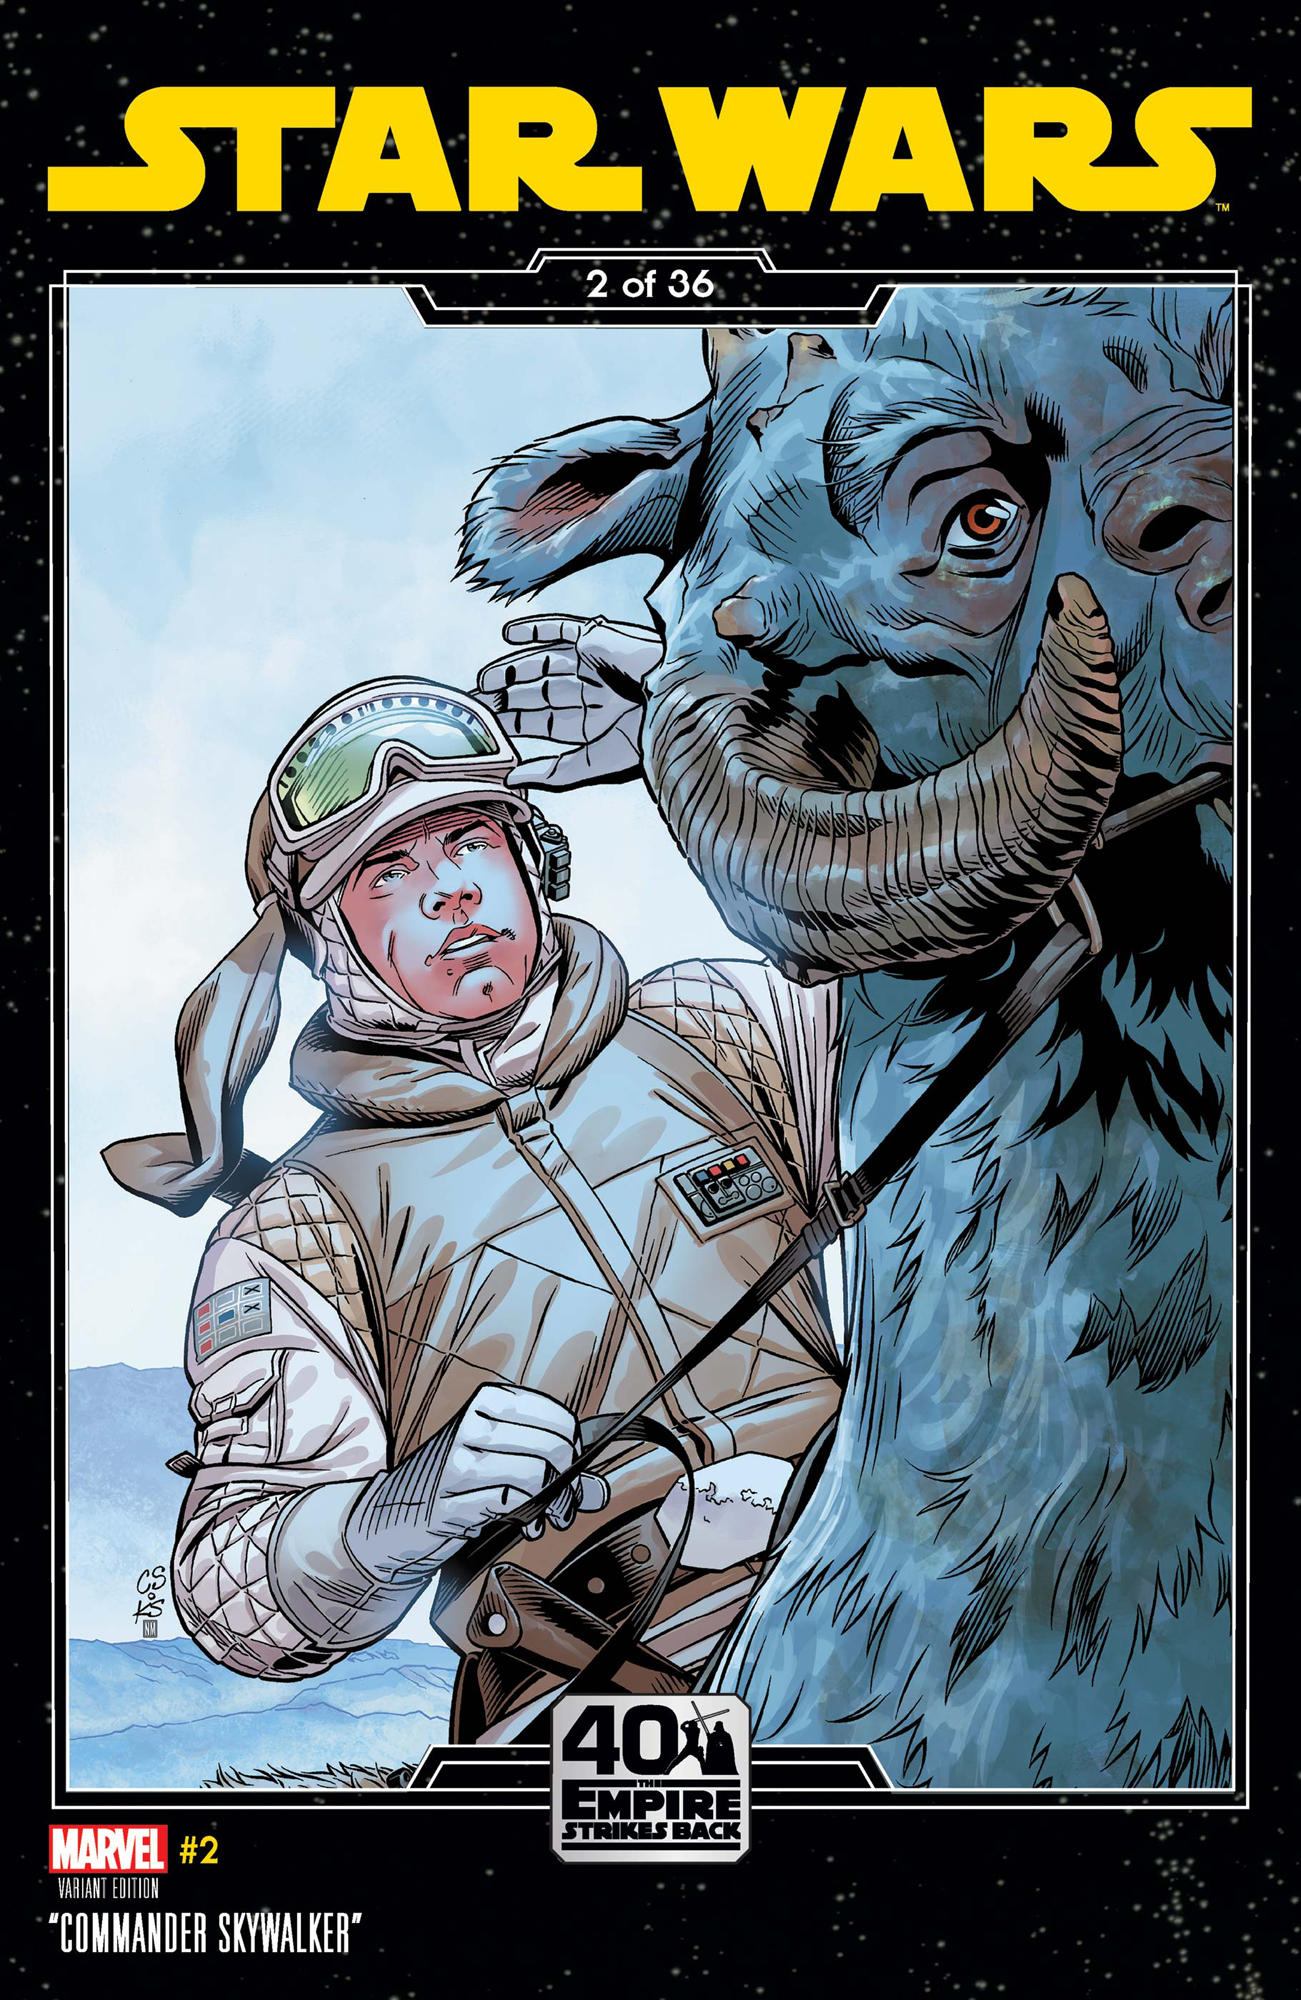 Star Wars #2 (Chris Sprouse Empire Strikes Back Variant Cover) (29.01.2020)